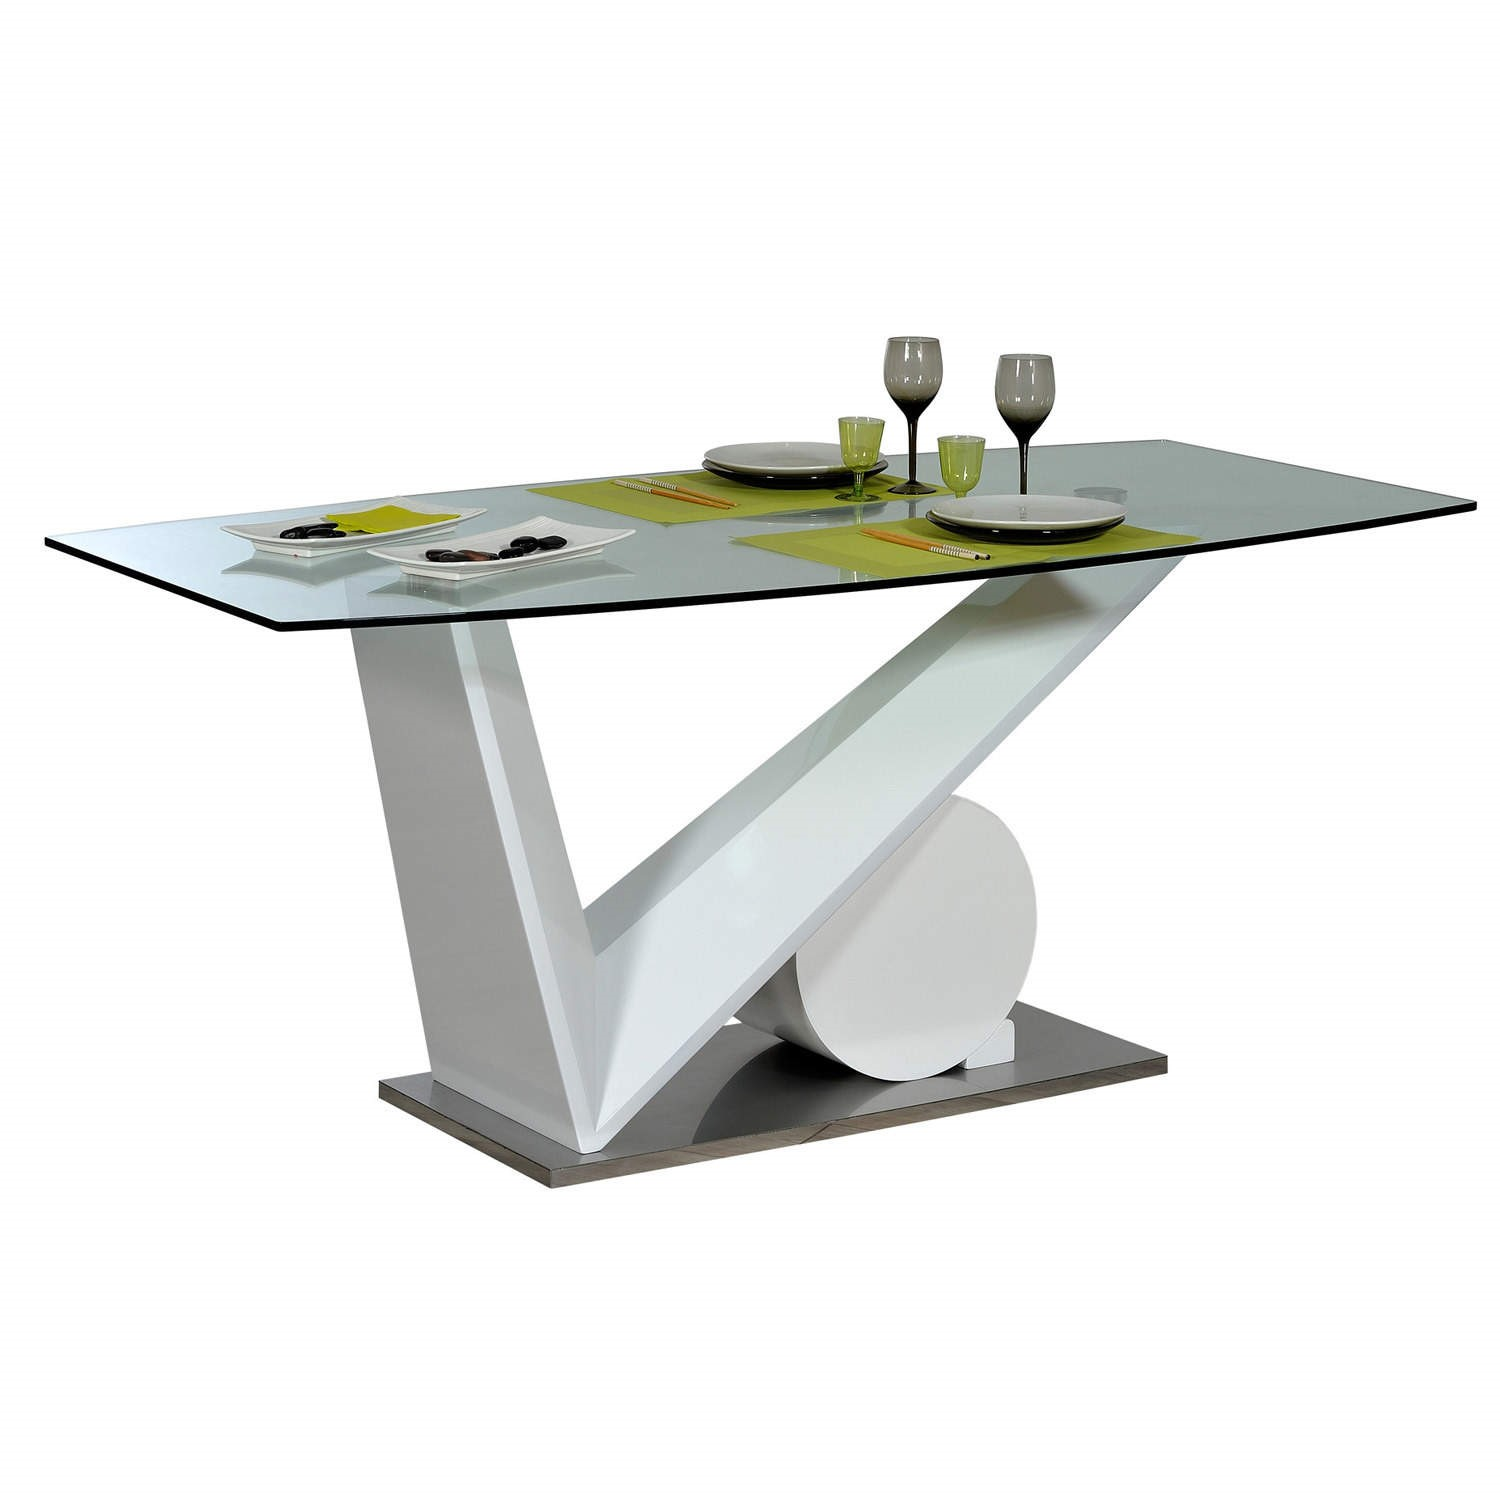 Sciae Brook 76 Glass Top Dining Table in White High Gloss  : 14SJ27422supersize from furniture123.co.uk size 700 x 700 jpeg 34kB